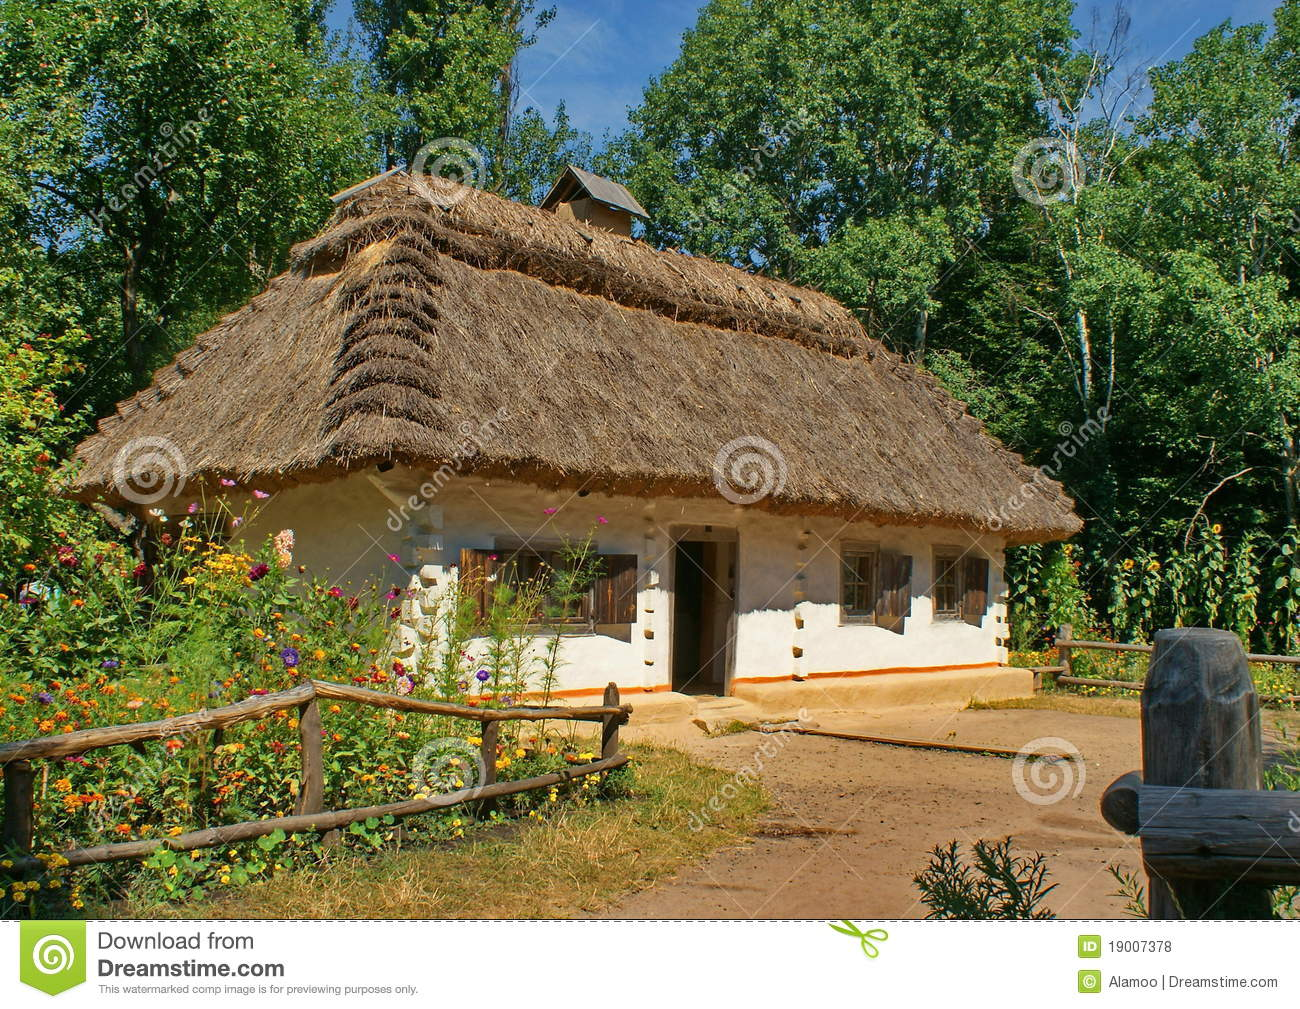 Shed Roof Old House In The Village Of Ukraine Stock Photo Image